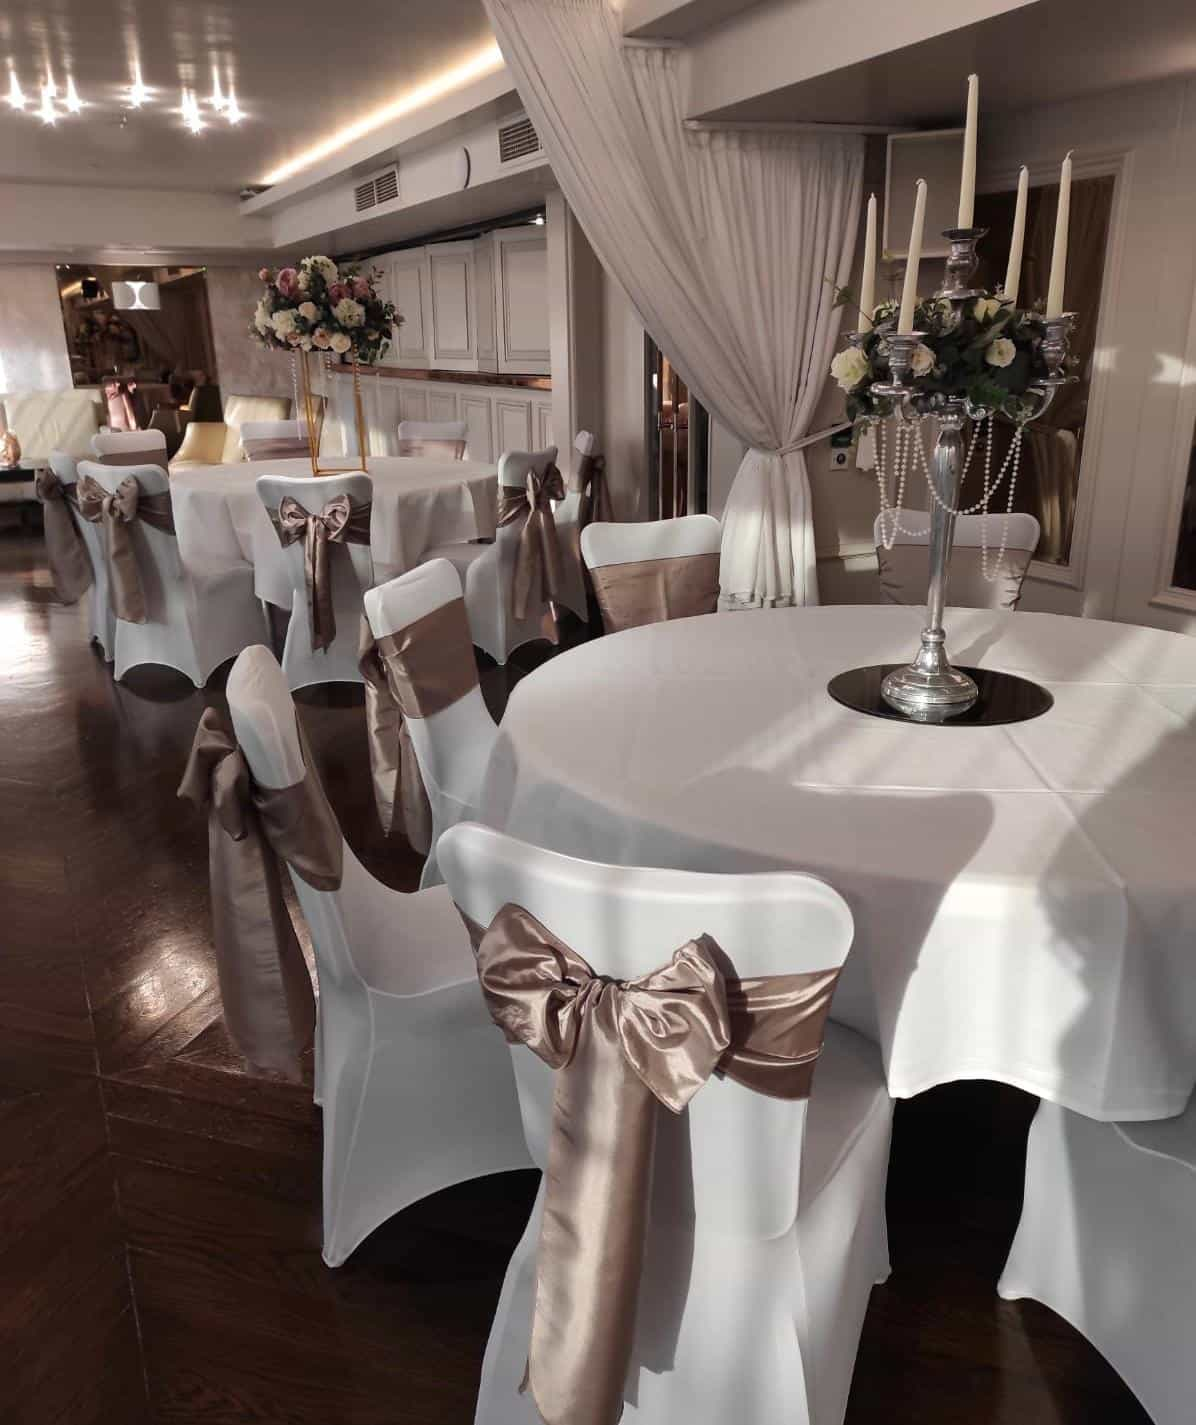 Wedding breakfast setting with white chair, table and drapes setting. Great large candleabra centrepieces and golden taffeta sash bows on chairs